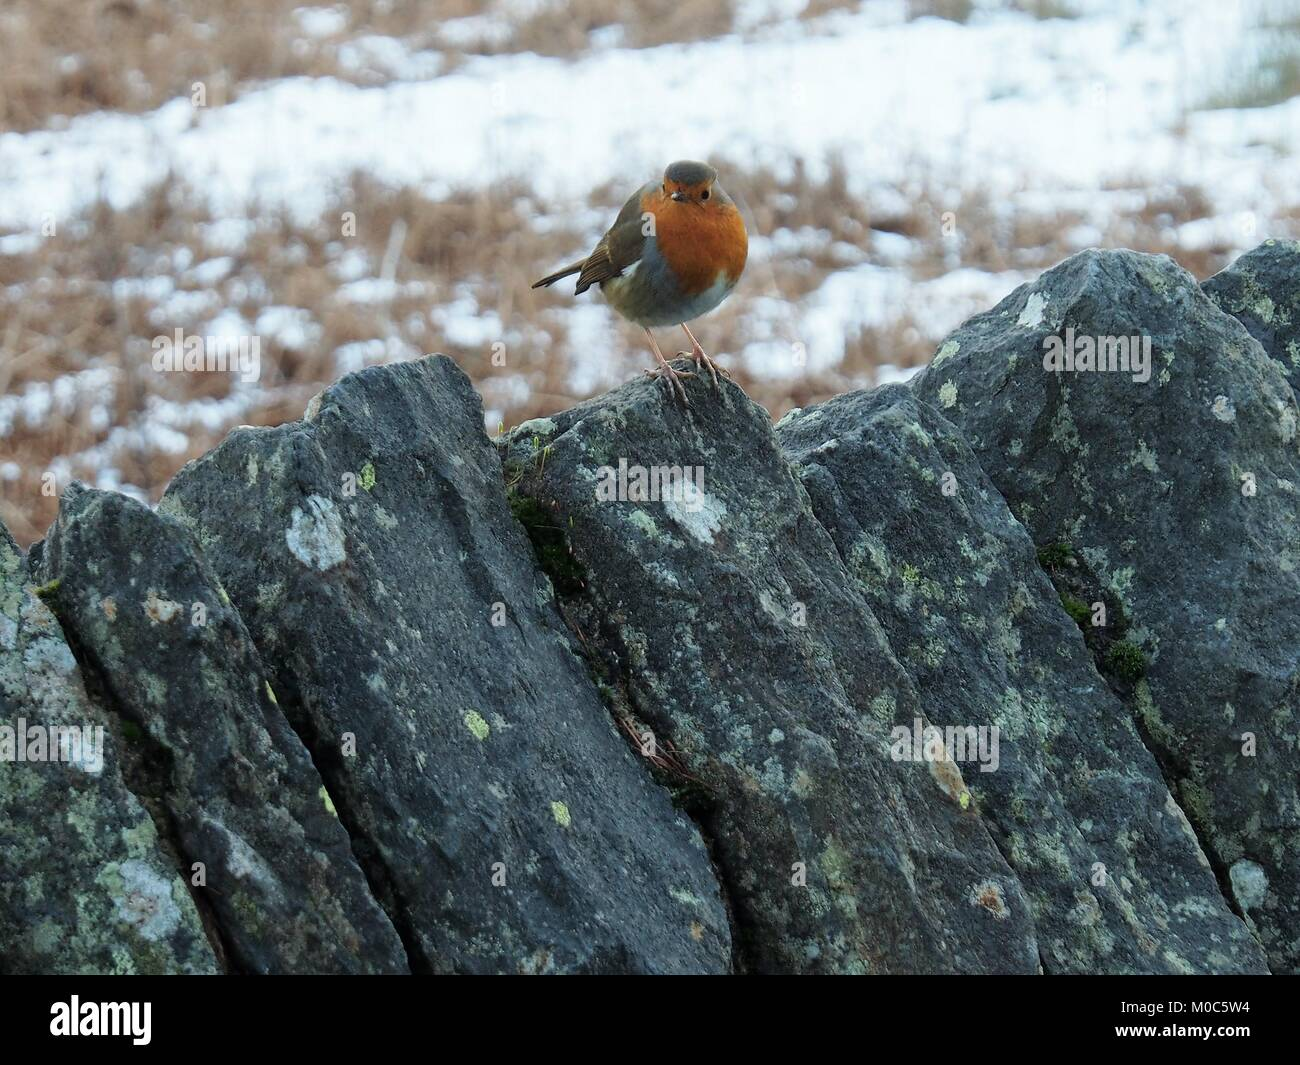 European Robin perched on a dry stone wall, Whinlatter Pass, Lake District National Park, Cumbria, United Kingdom - Stock Image